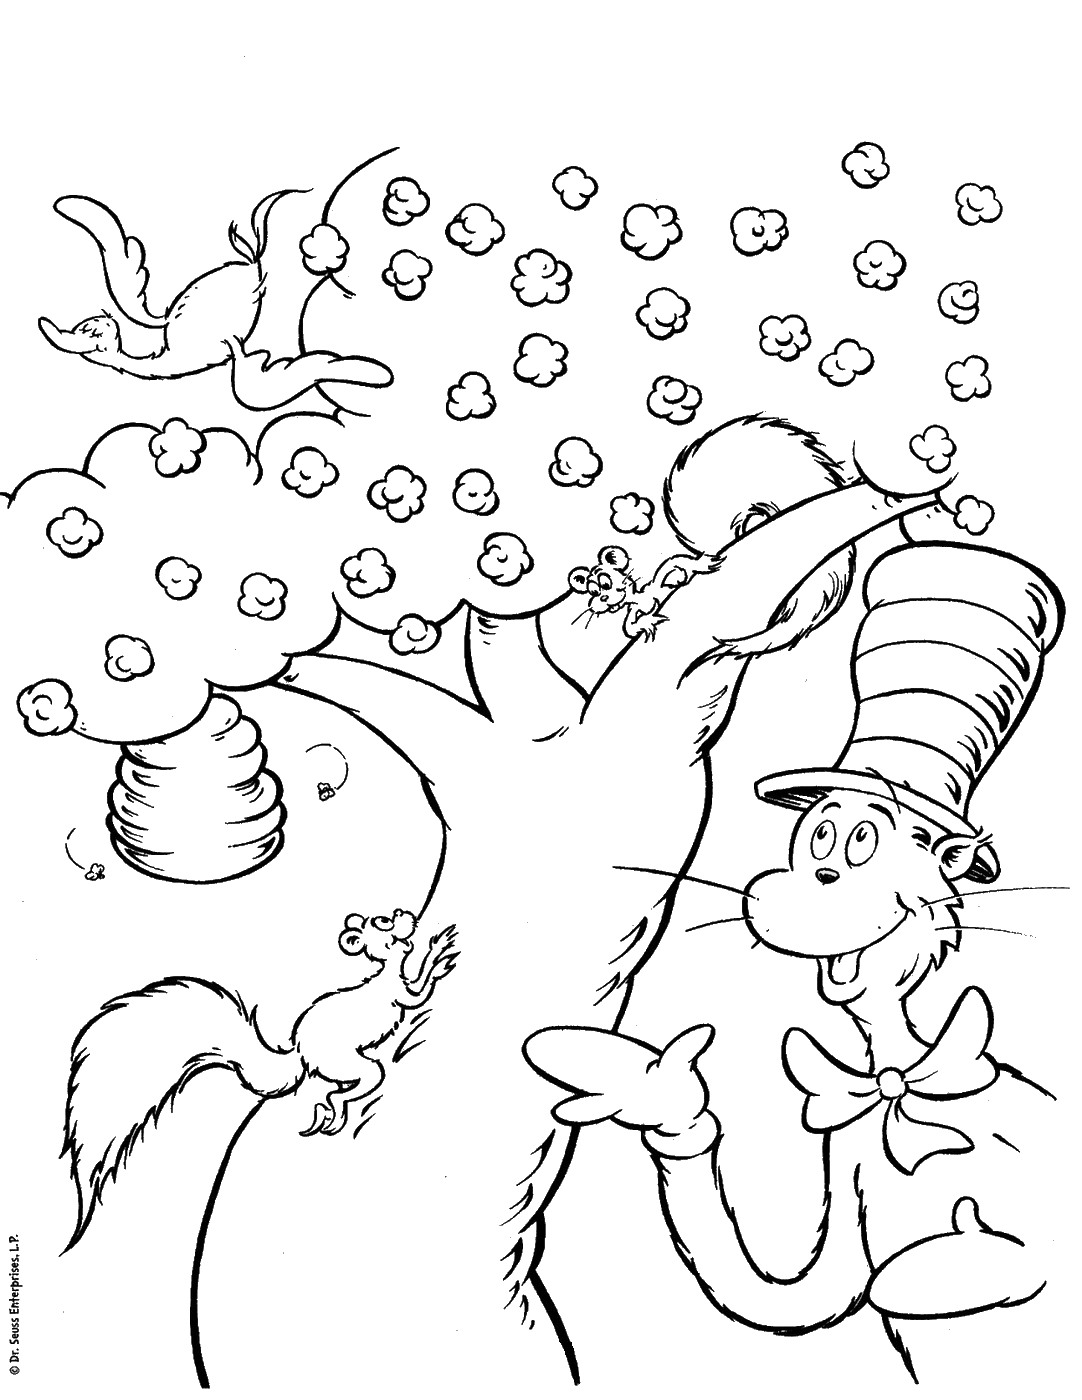 Dr Seuss Printable Coloring Pages Top Free